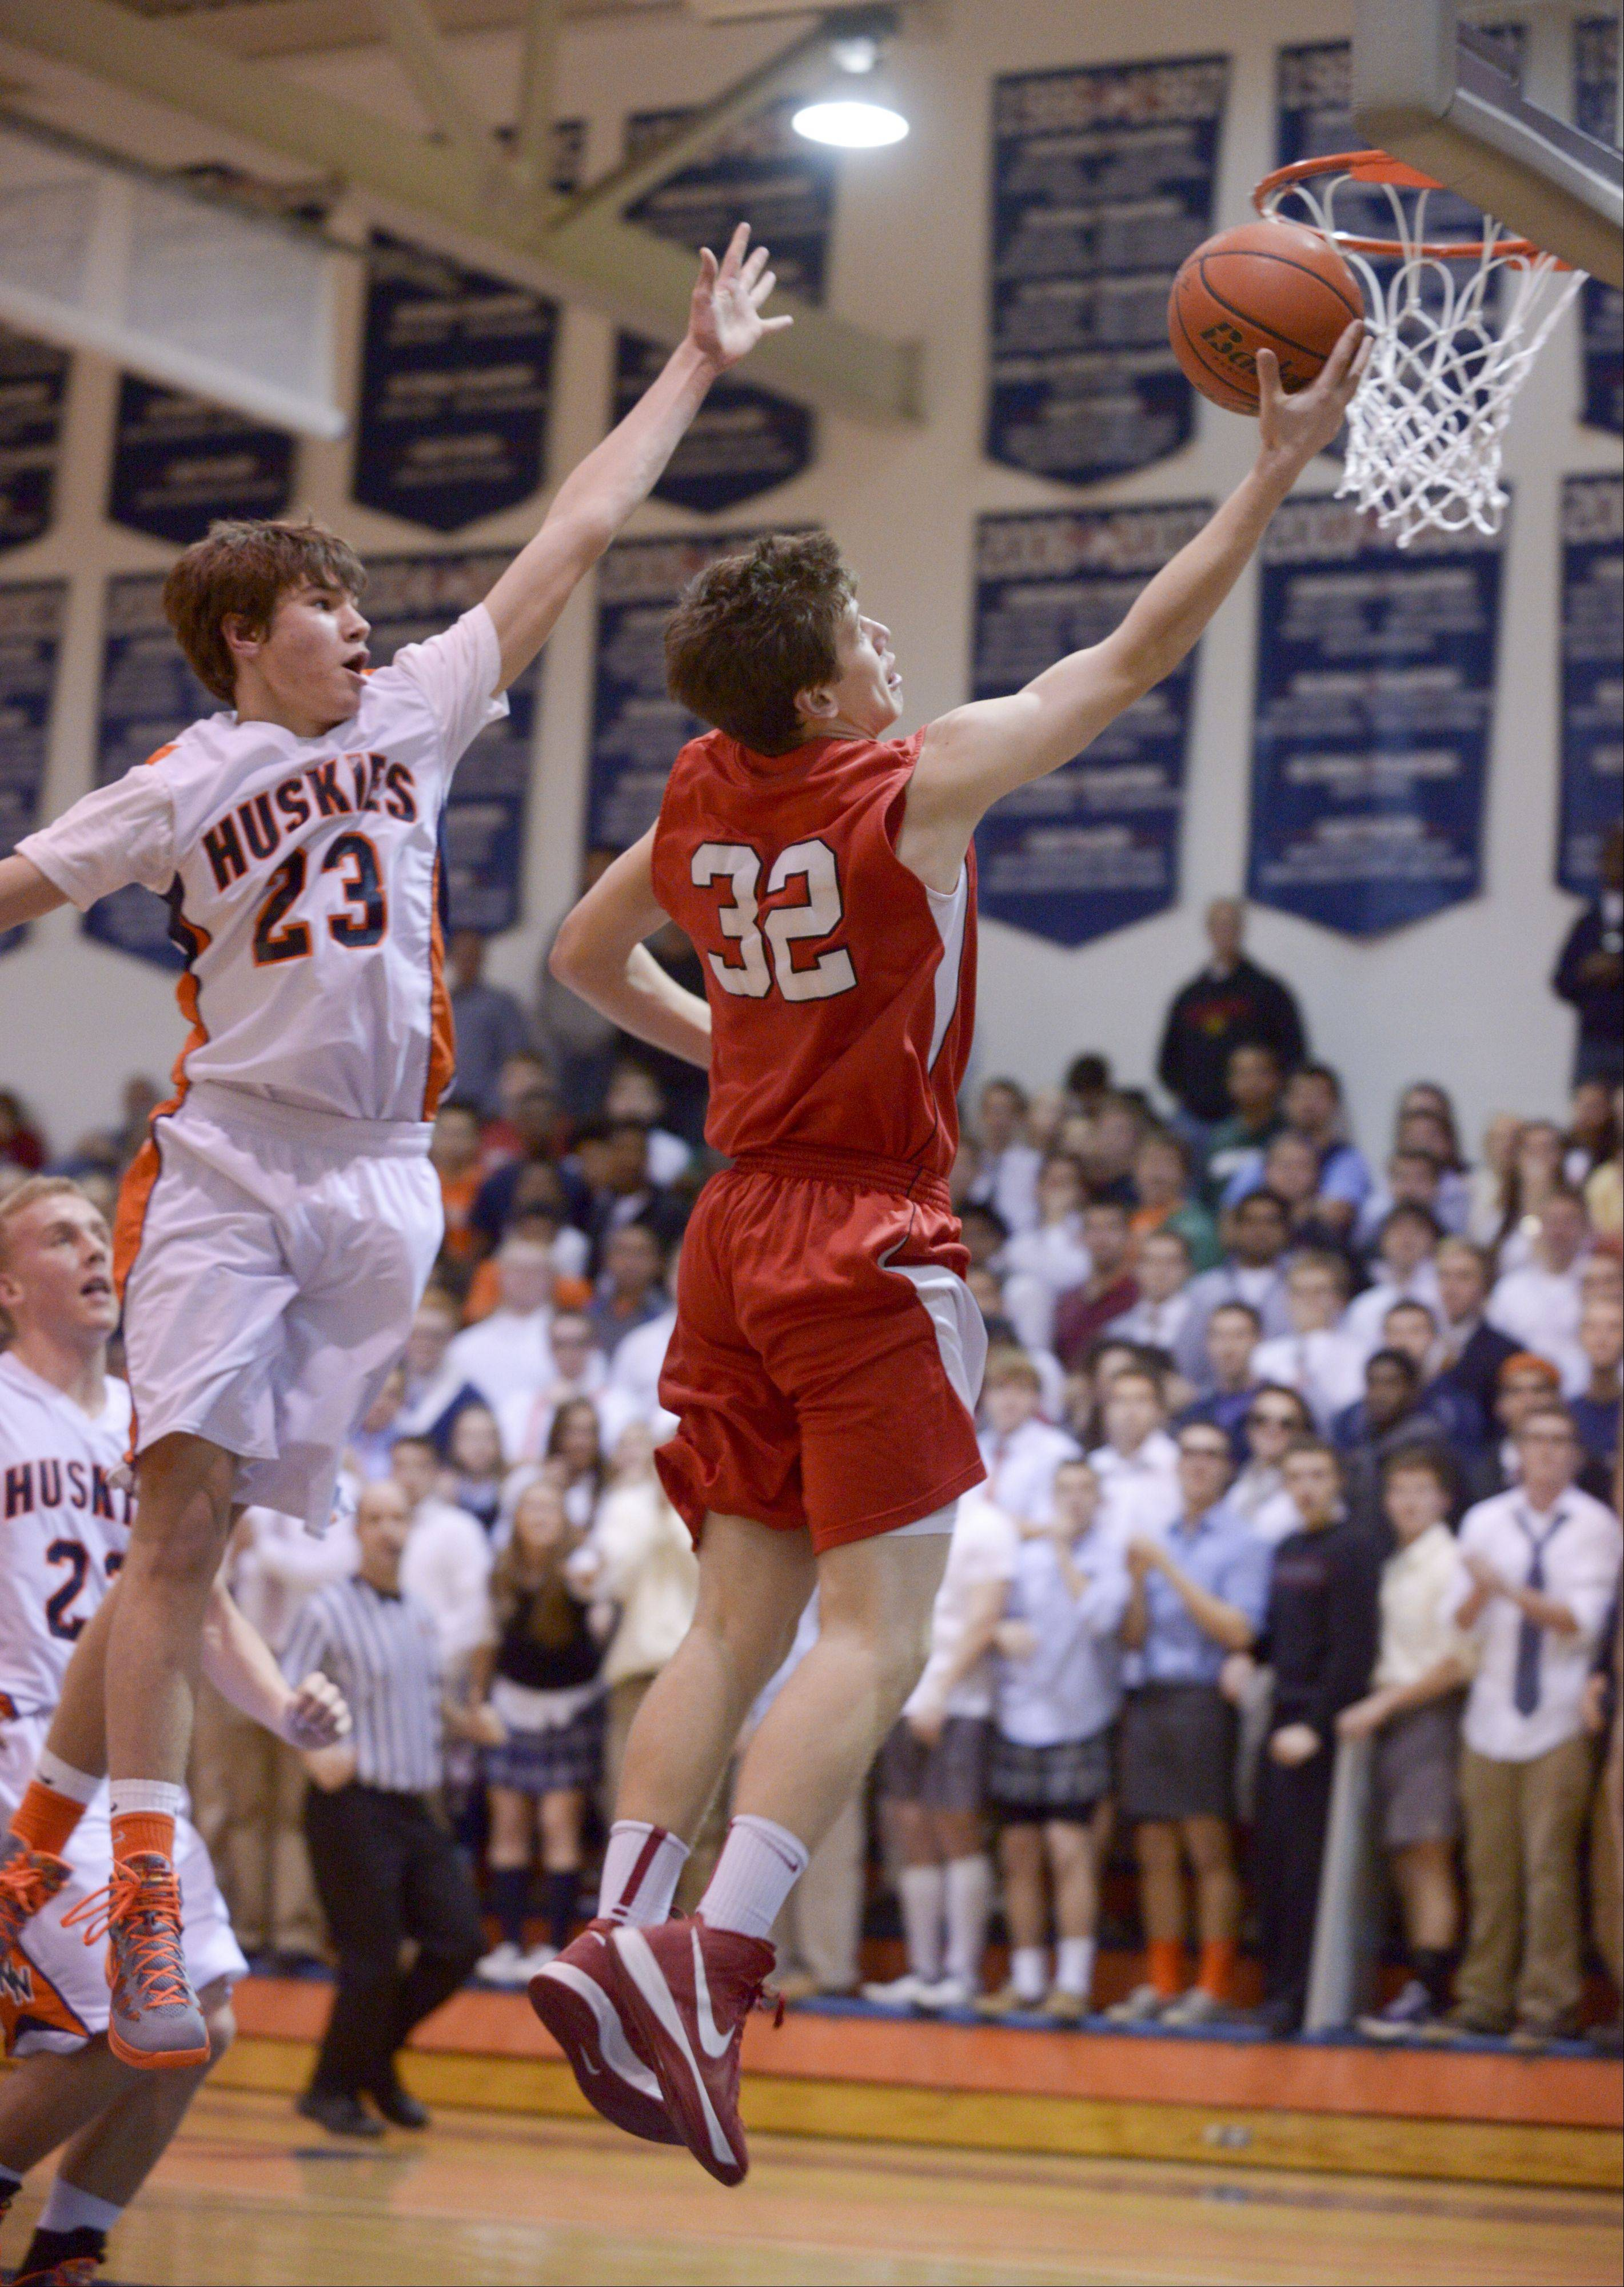 Benet's Dan Sobolewski lays up for a shot getting past Naperville North's Mitch Lewis, during in boys basketball in Naperville Sunday.